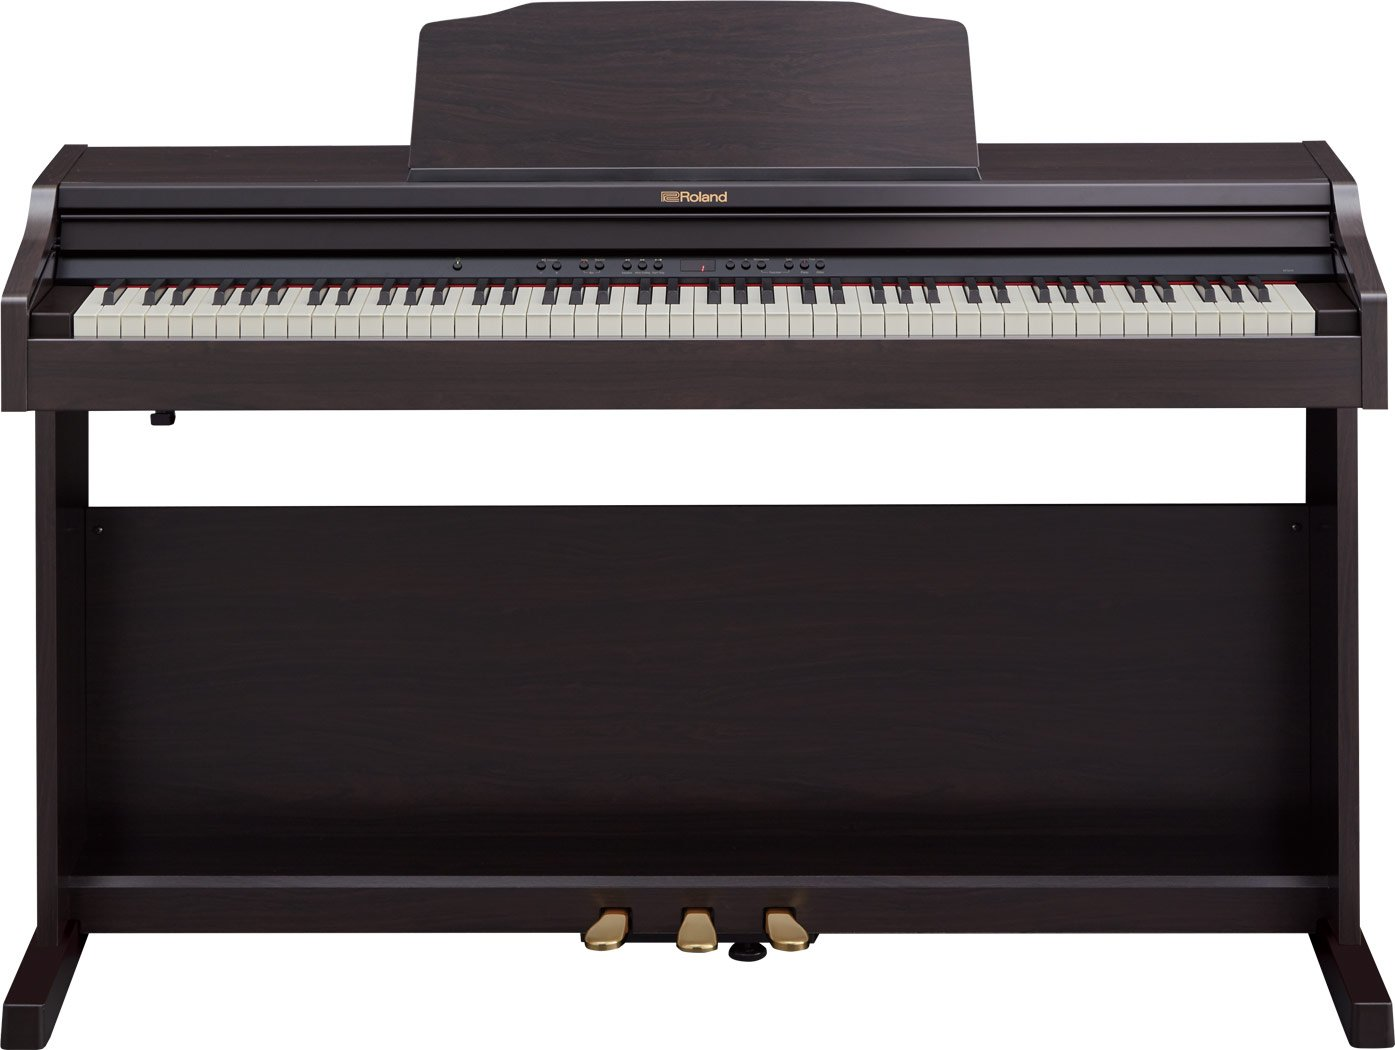 Roland RP 501R - Rosewood